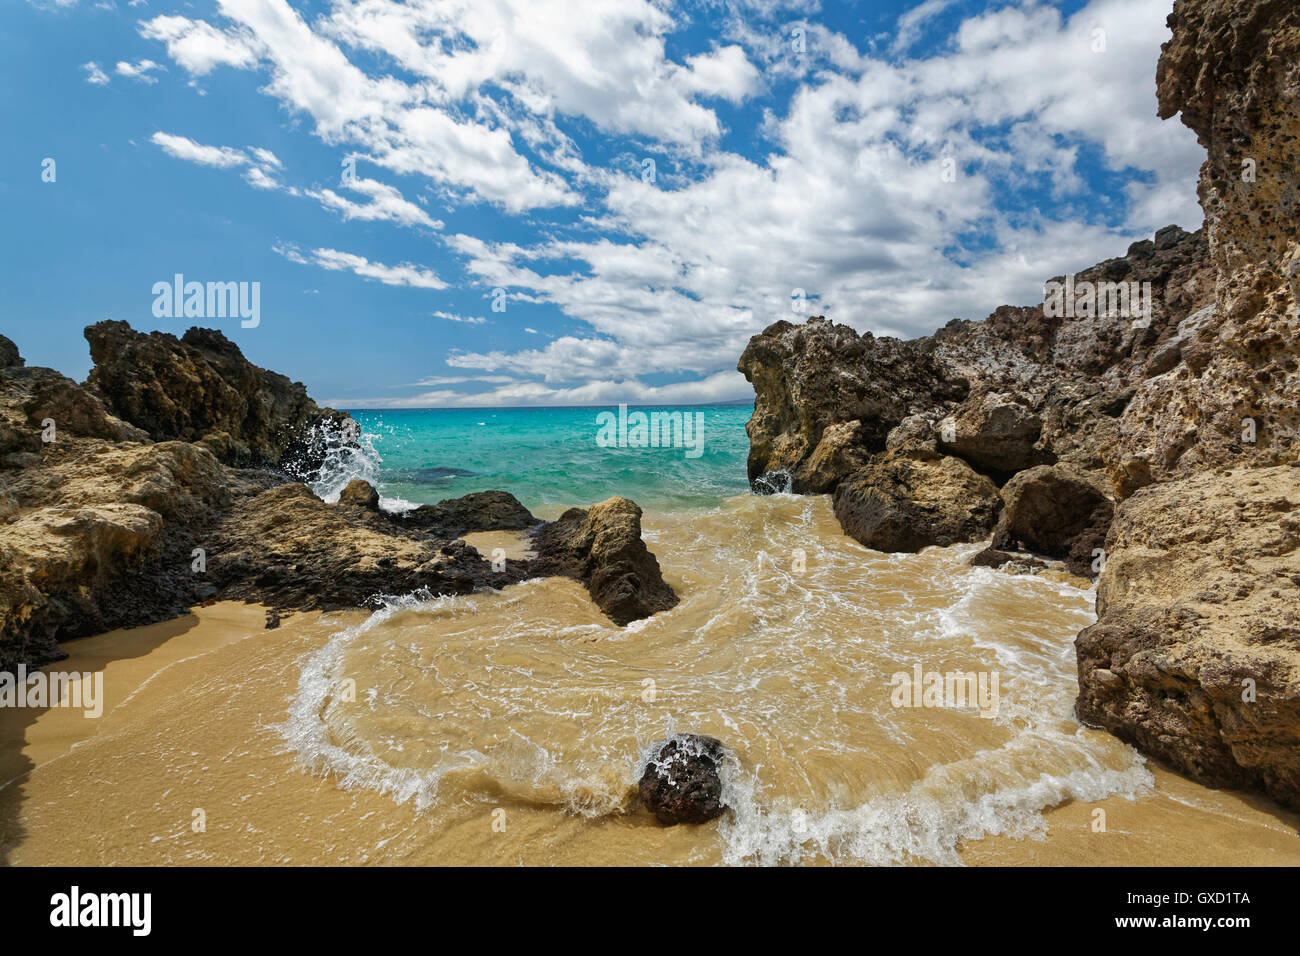 Hawaii beach and surf surrounded by volcanic rock taken on the big island of Hawaii with no people and surf pouring - Stock Image